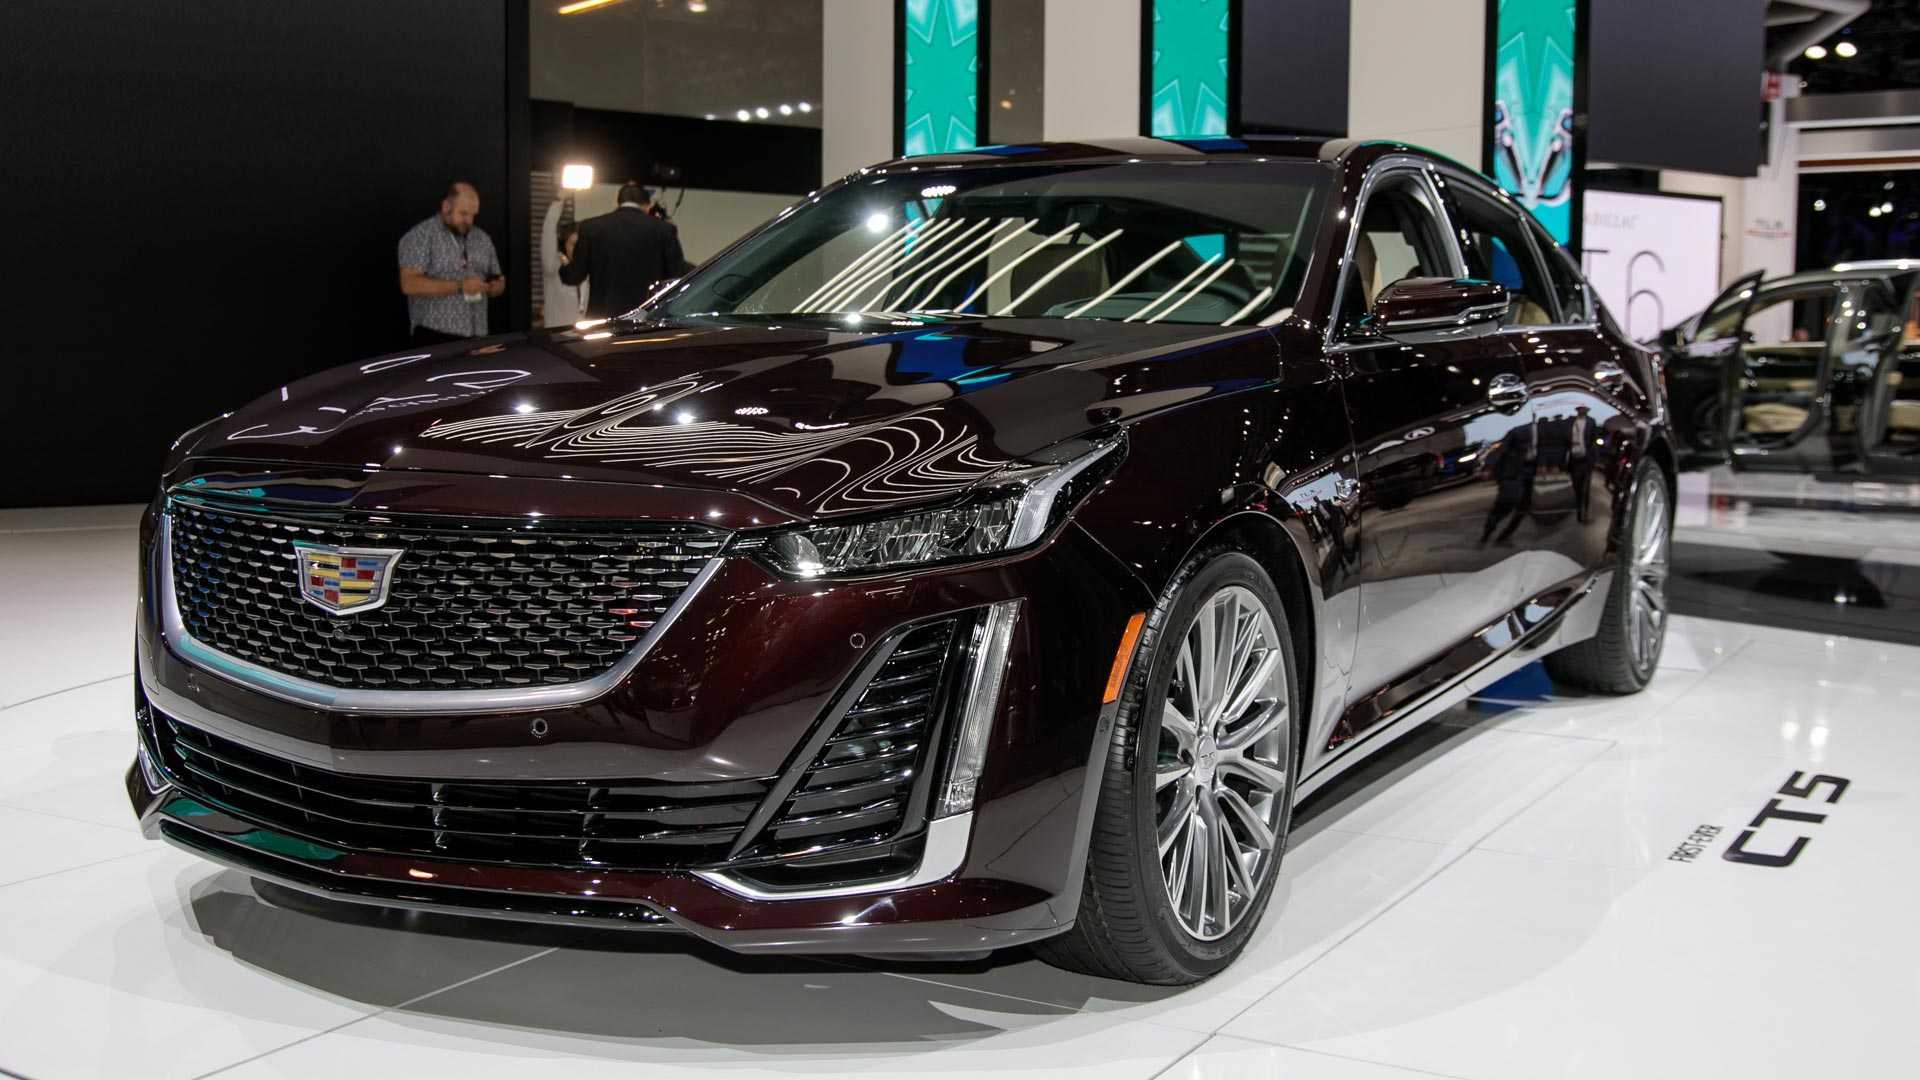 73 New Cadillac For 2020 Prices by Cadillac For 2020